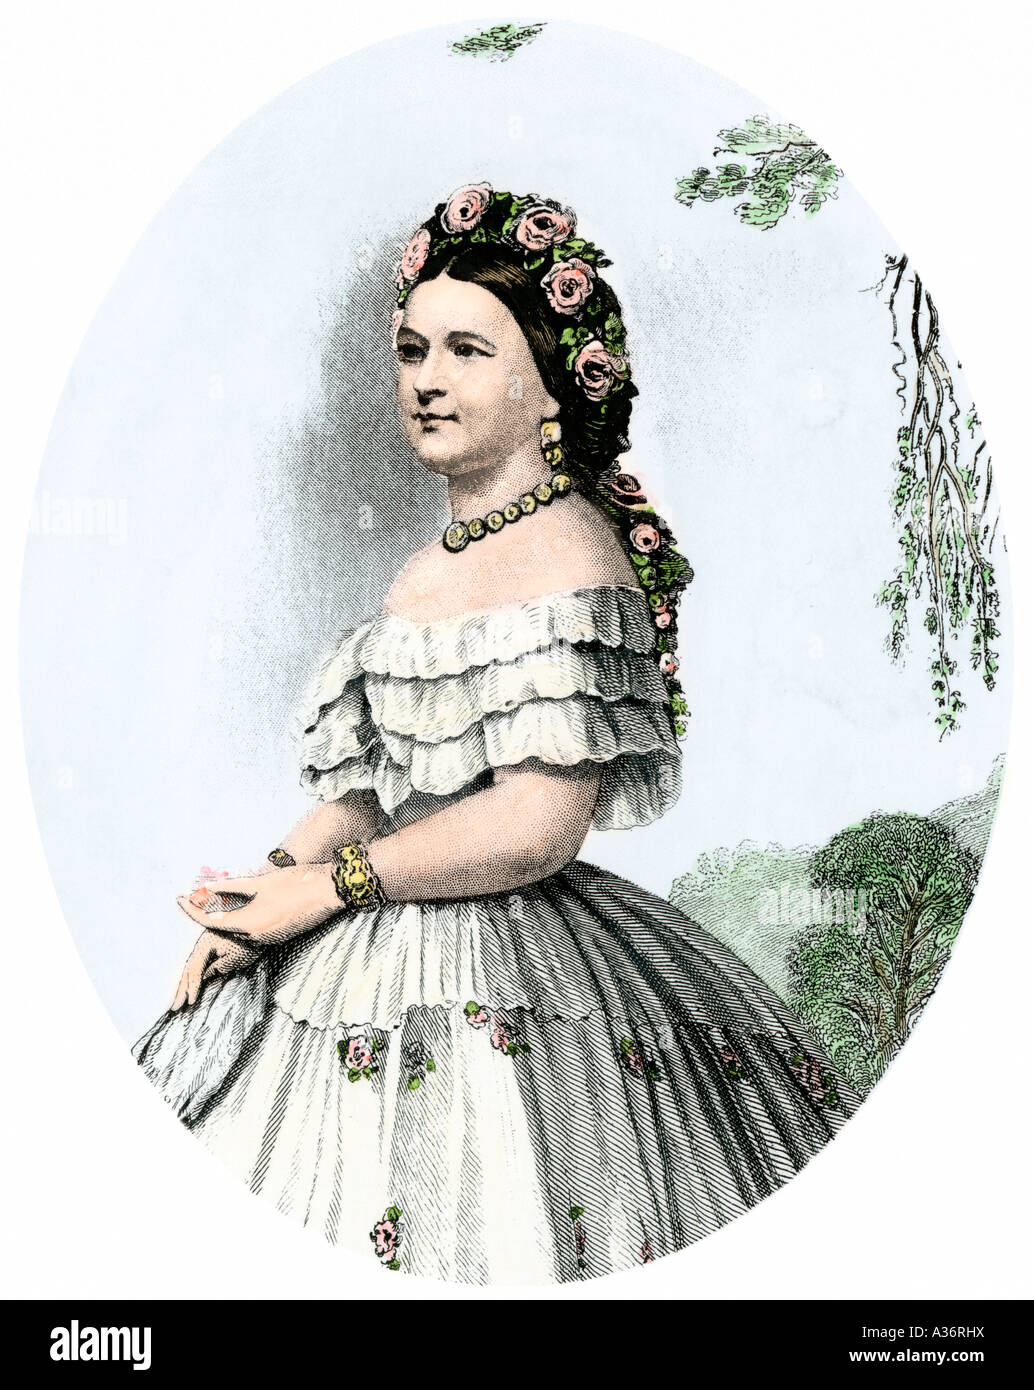 Mary Todd Lincoln wife of US President Abraham Lincoln. Hand-colored steel engraving - Stock Image